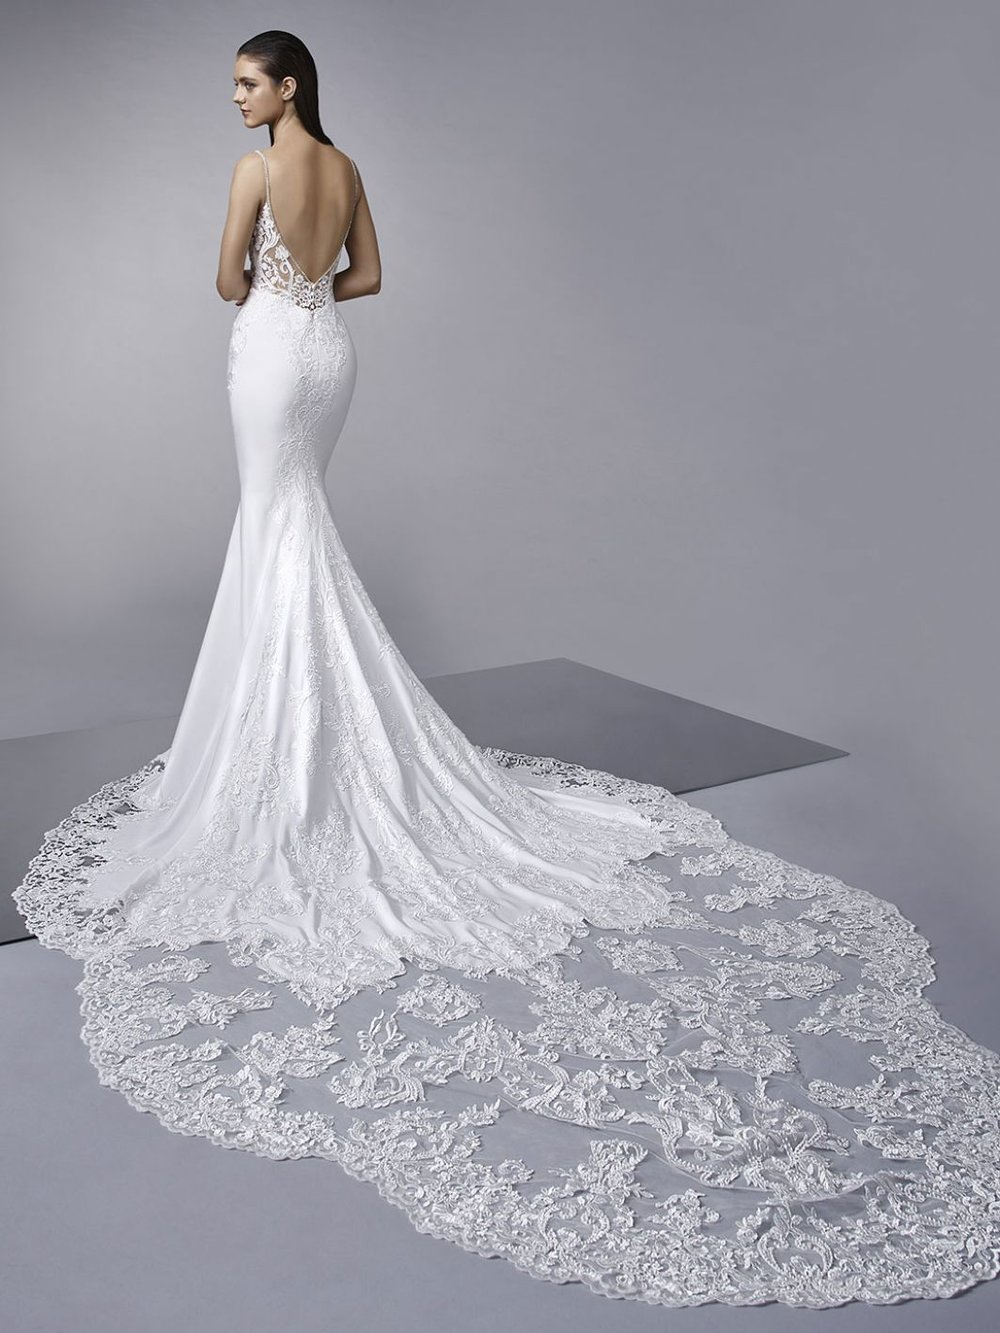 Year after year, lace wedding dresses remain a staple and today's gowns are no exception. Lace is a stunning fabric that feels classic yet modern in design. -